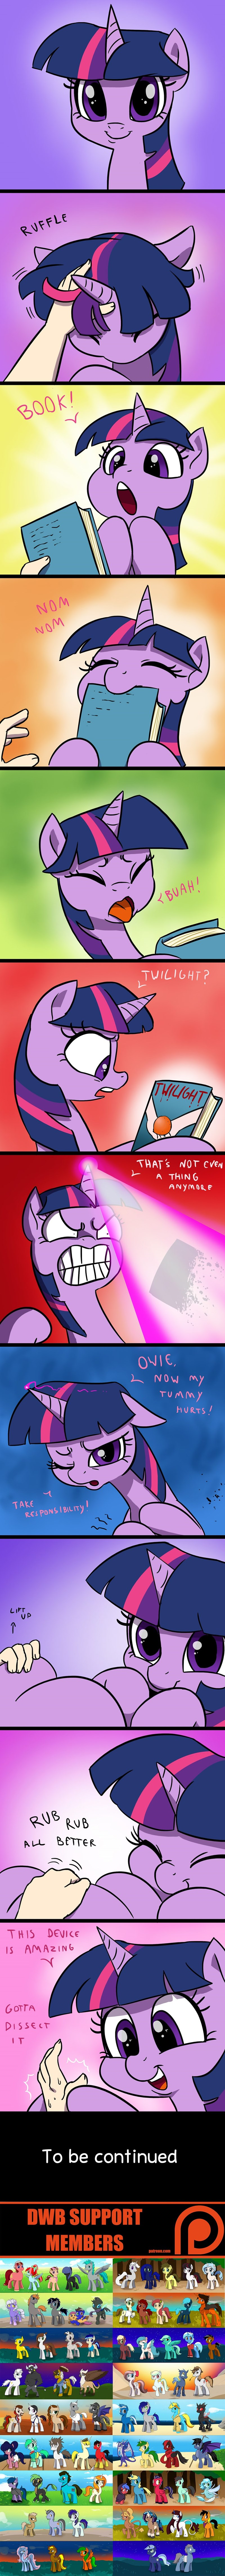 dragon spike equestria girls scitwi twilight sparkle Memes books twilight comic princess celestia double w brothers - 9253348864